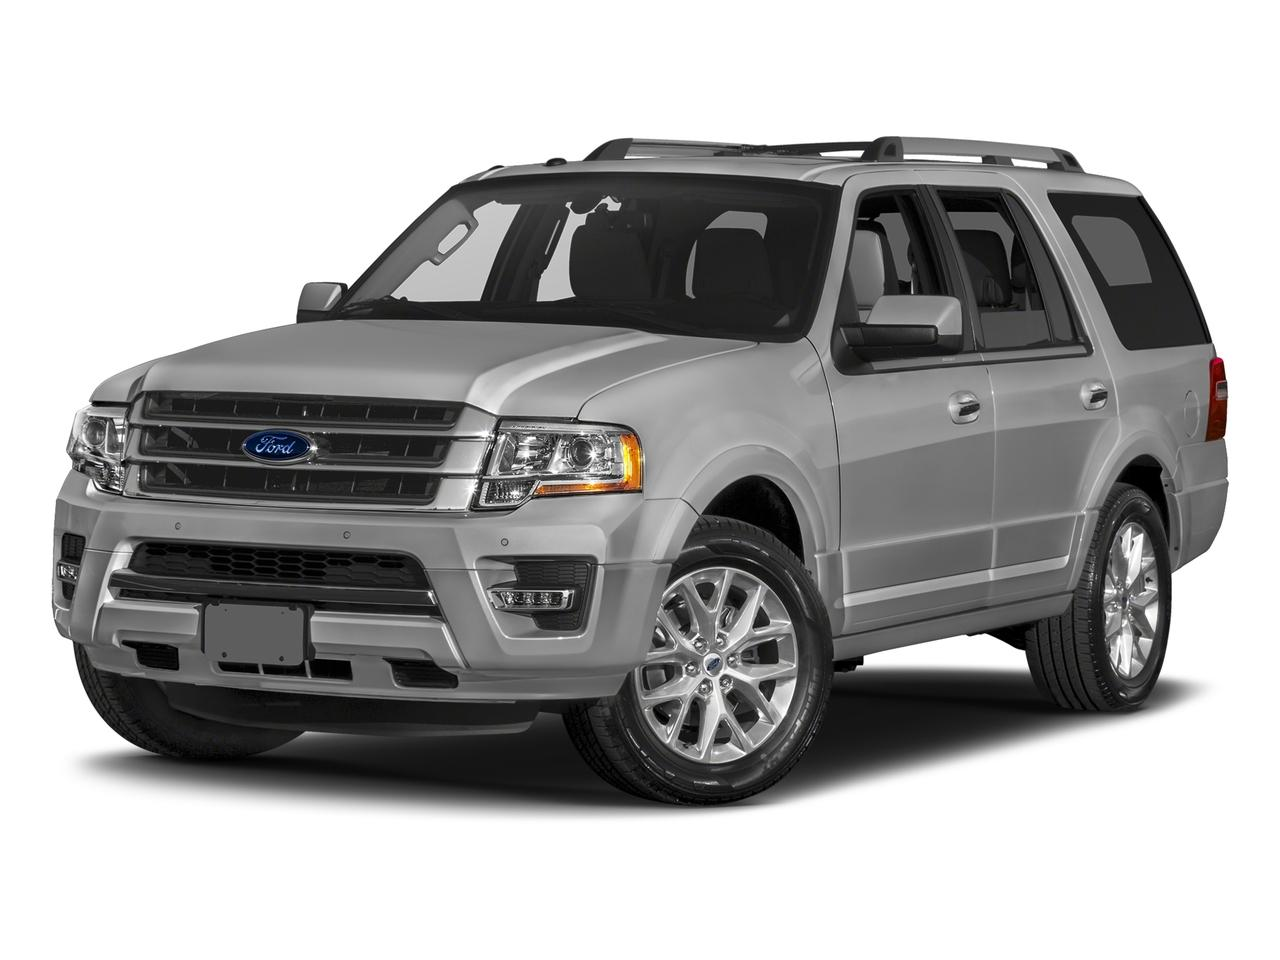 2017 Ford Expedition Vehicle Photo in Colma, CA 94014